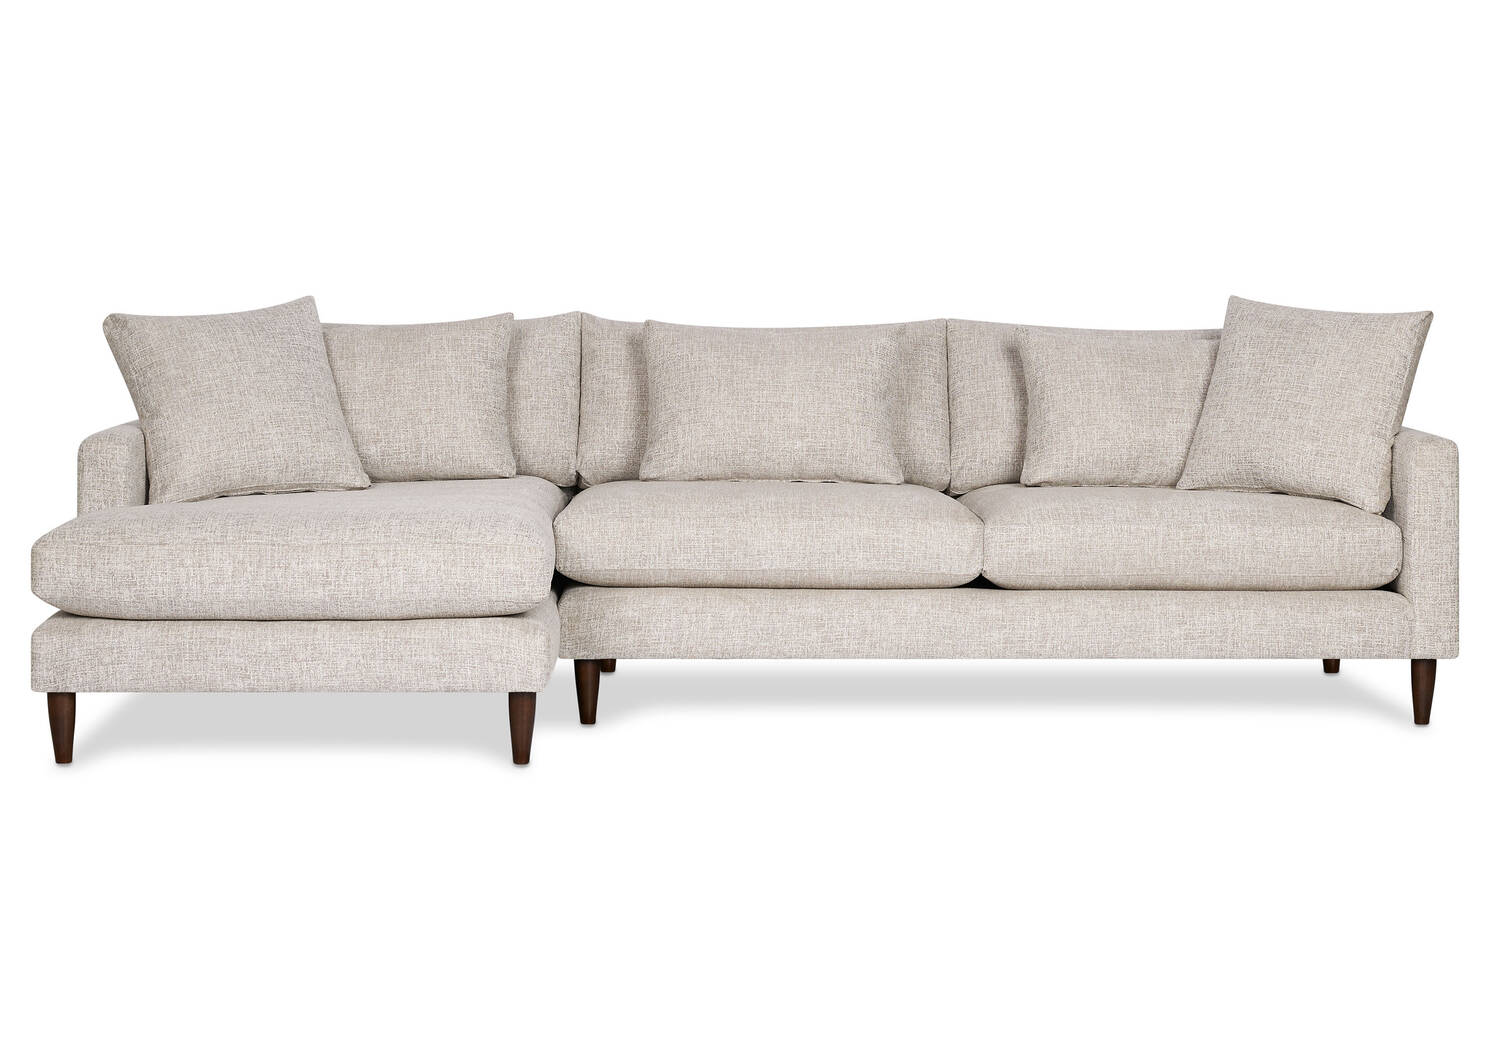 Nixon Sofa Chaise -Giovanna Moondus, LCF